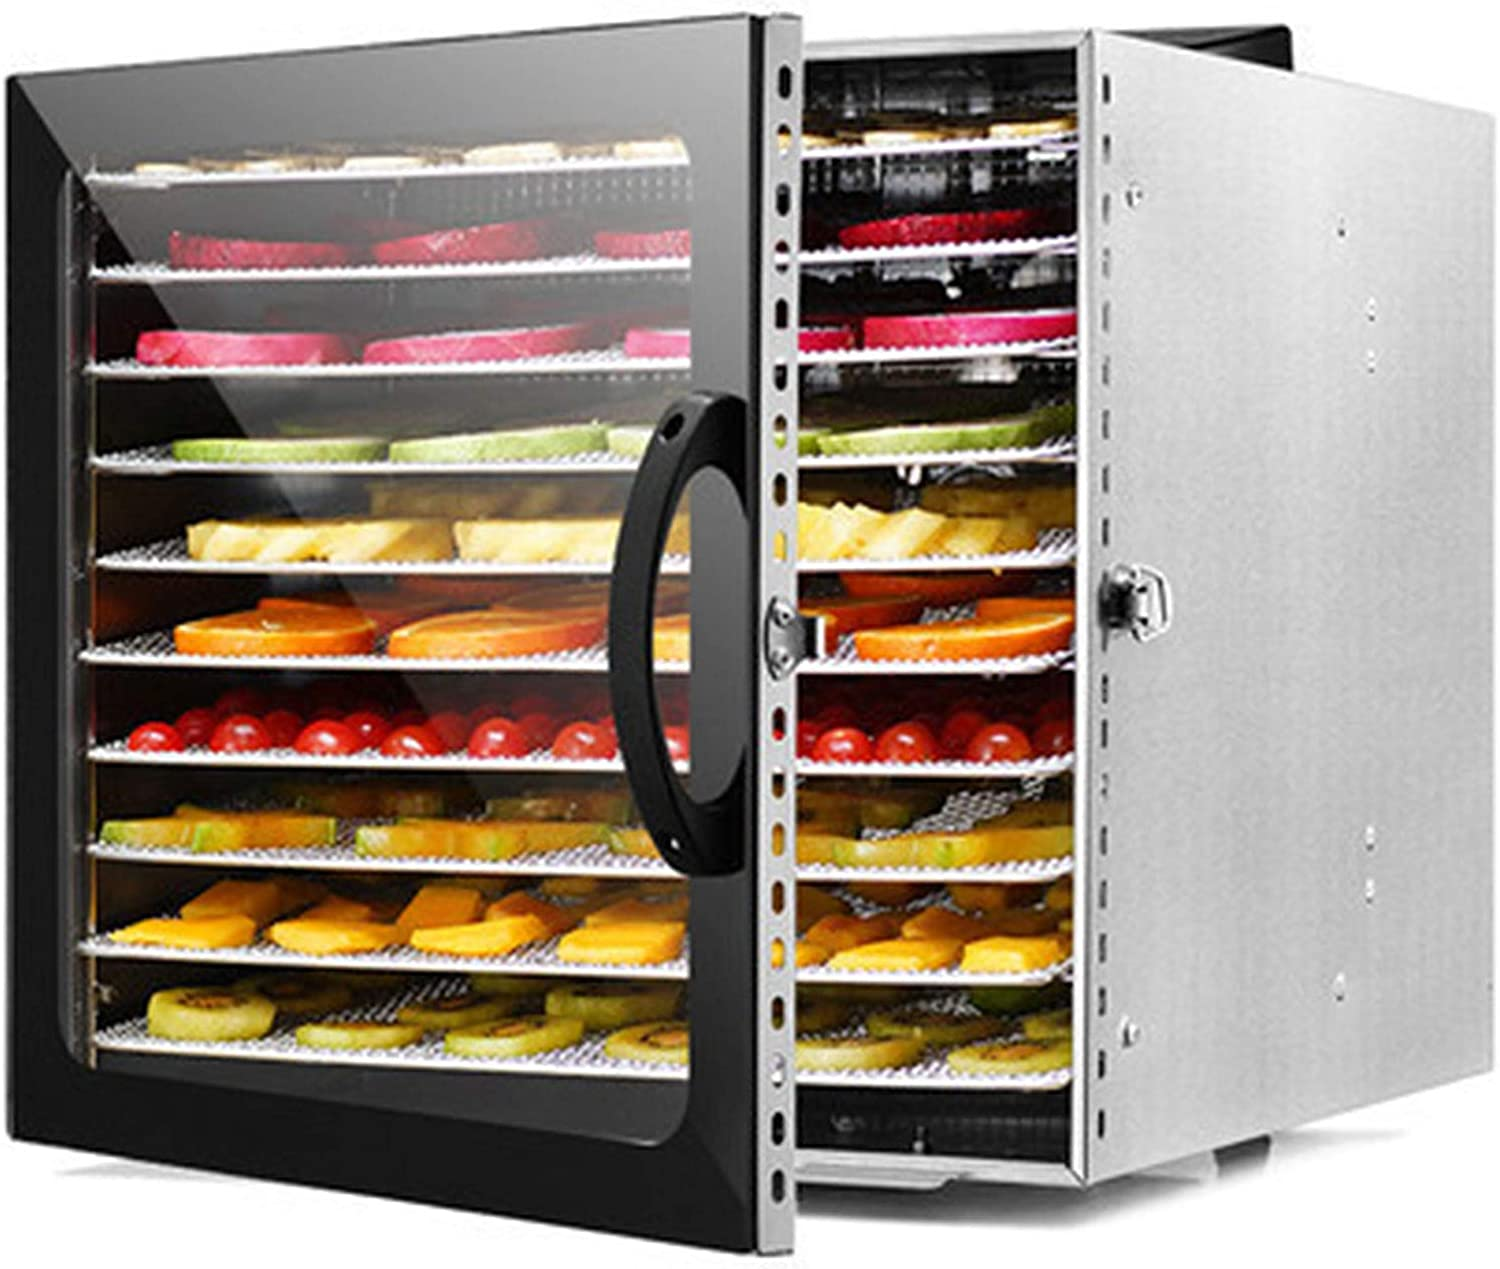 Food Dehydrator Machine Max 76% OFF 10 Floors And Recommended Temperatu Adjustable Timer